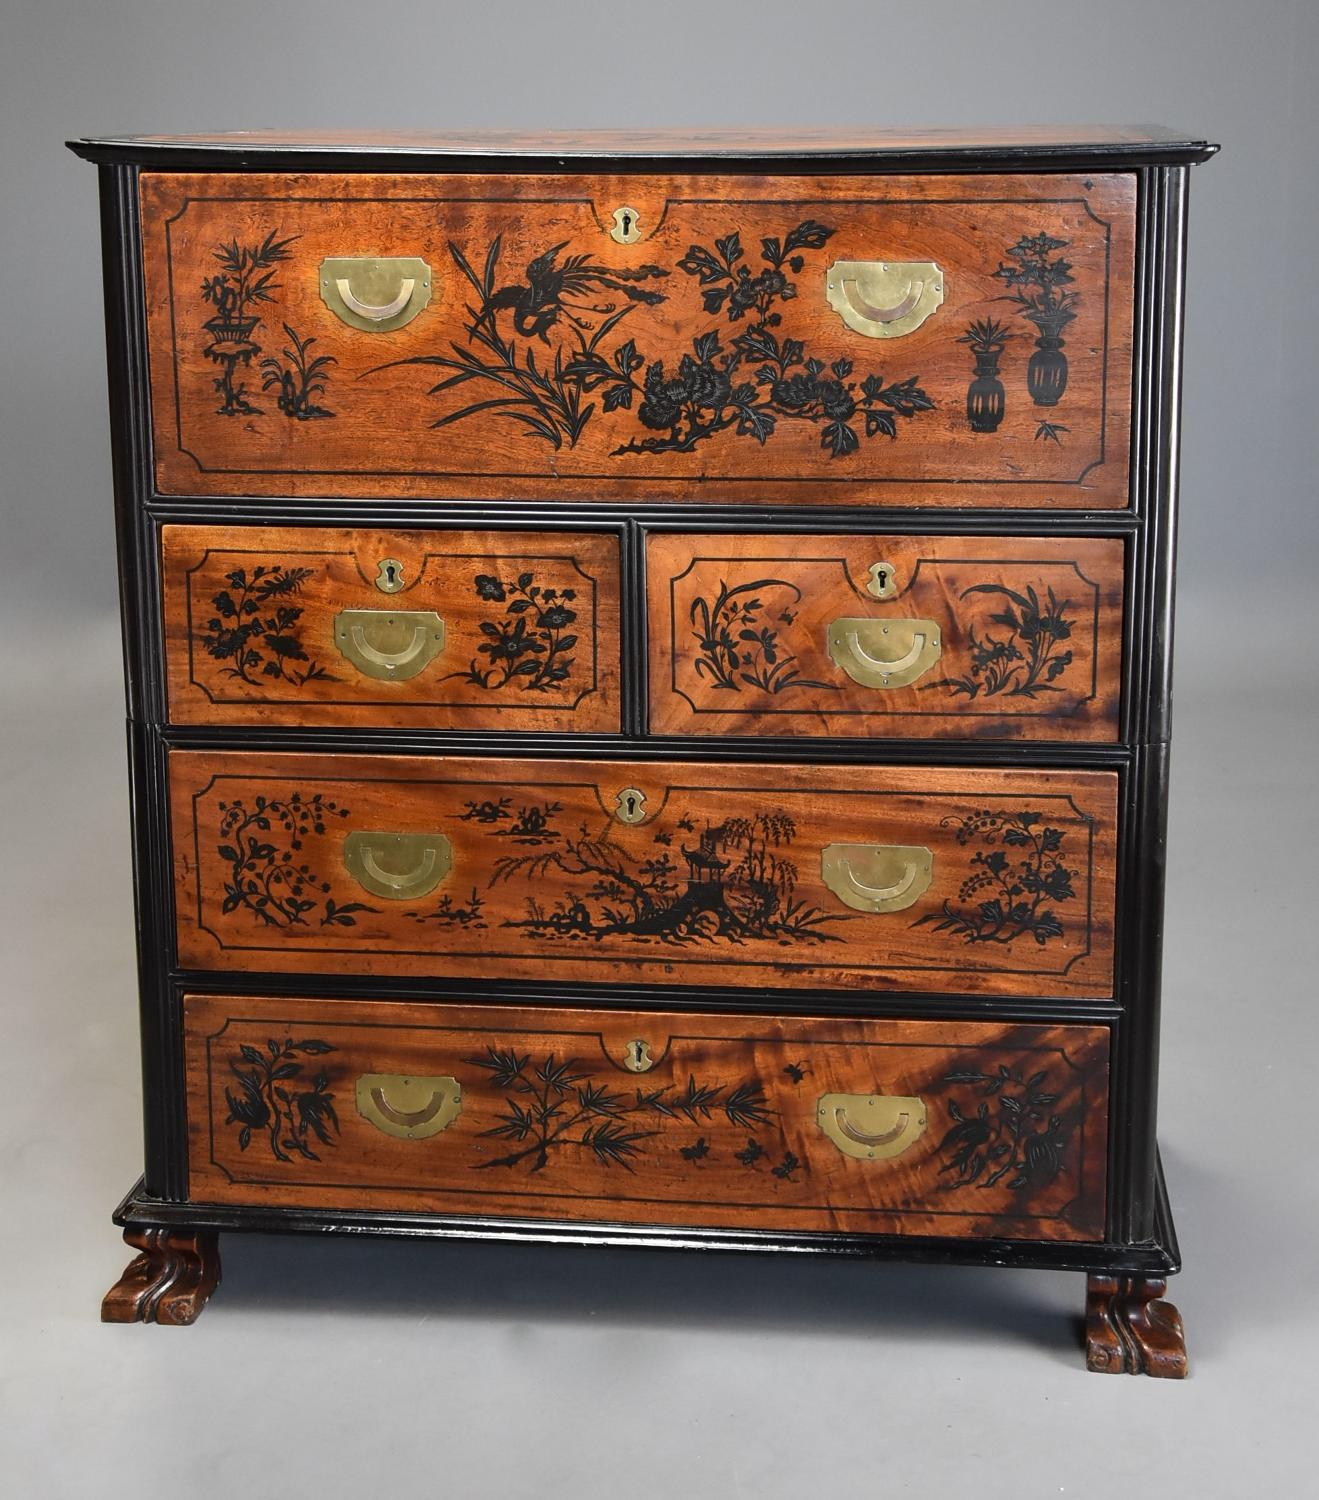 Rare 19thc Anglo Chinese camphor wood Campaign secretaire chest